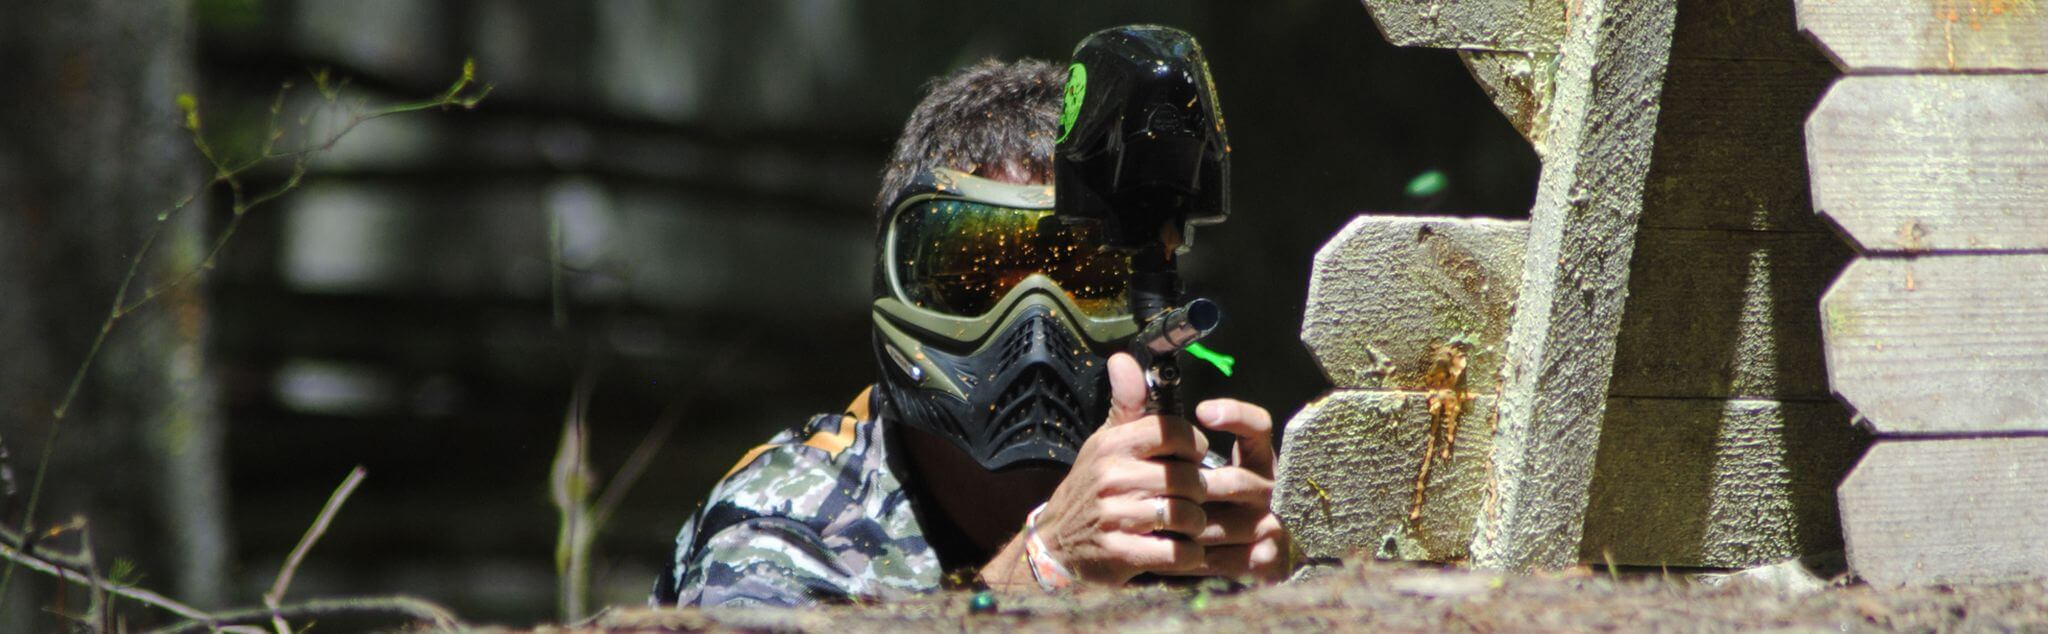 Paintball en Navarra